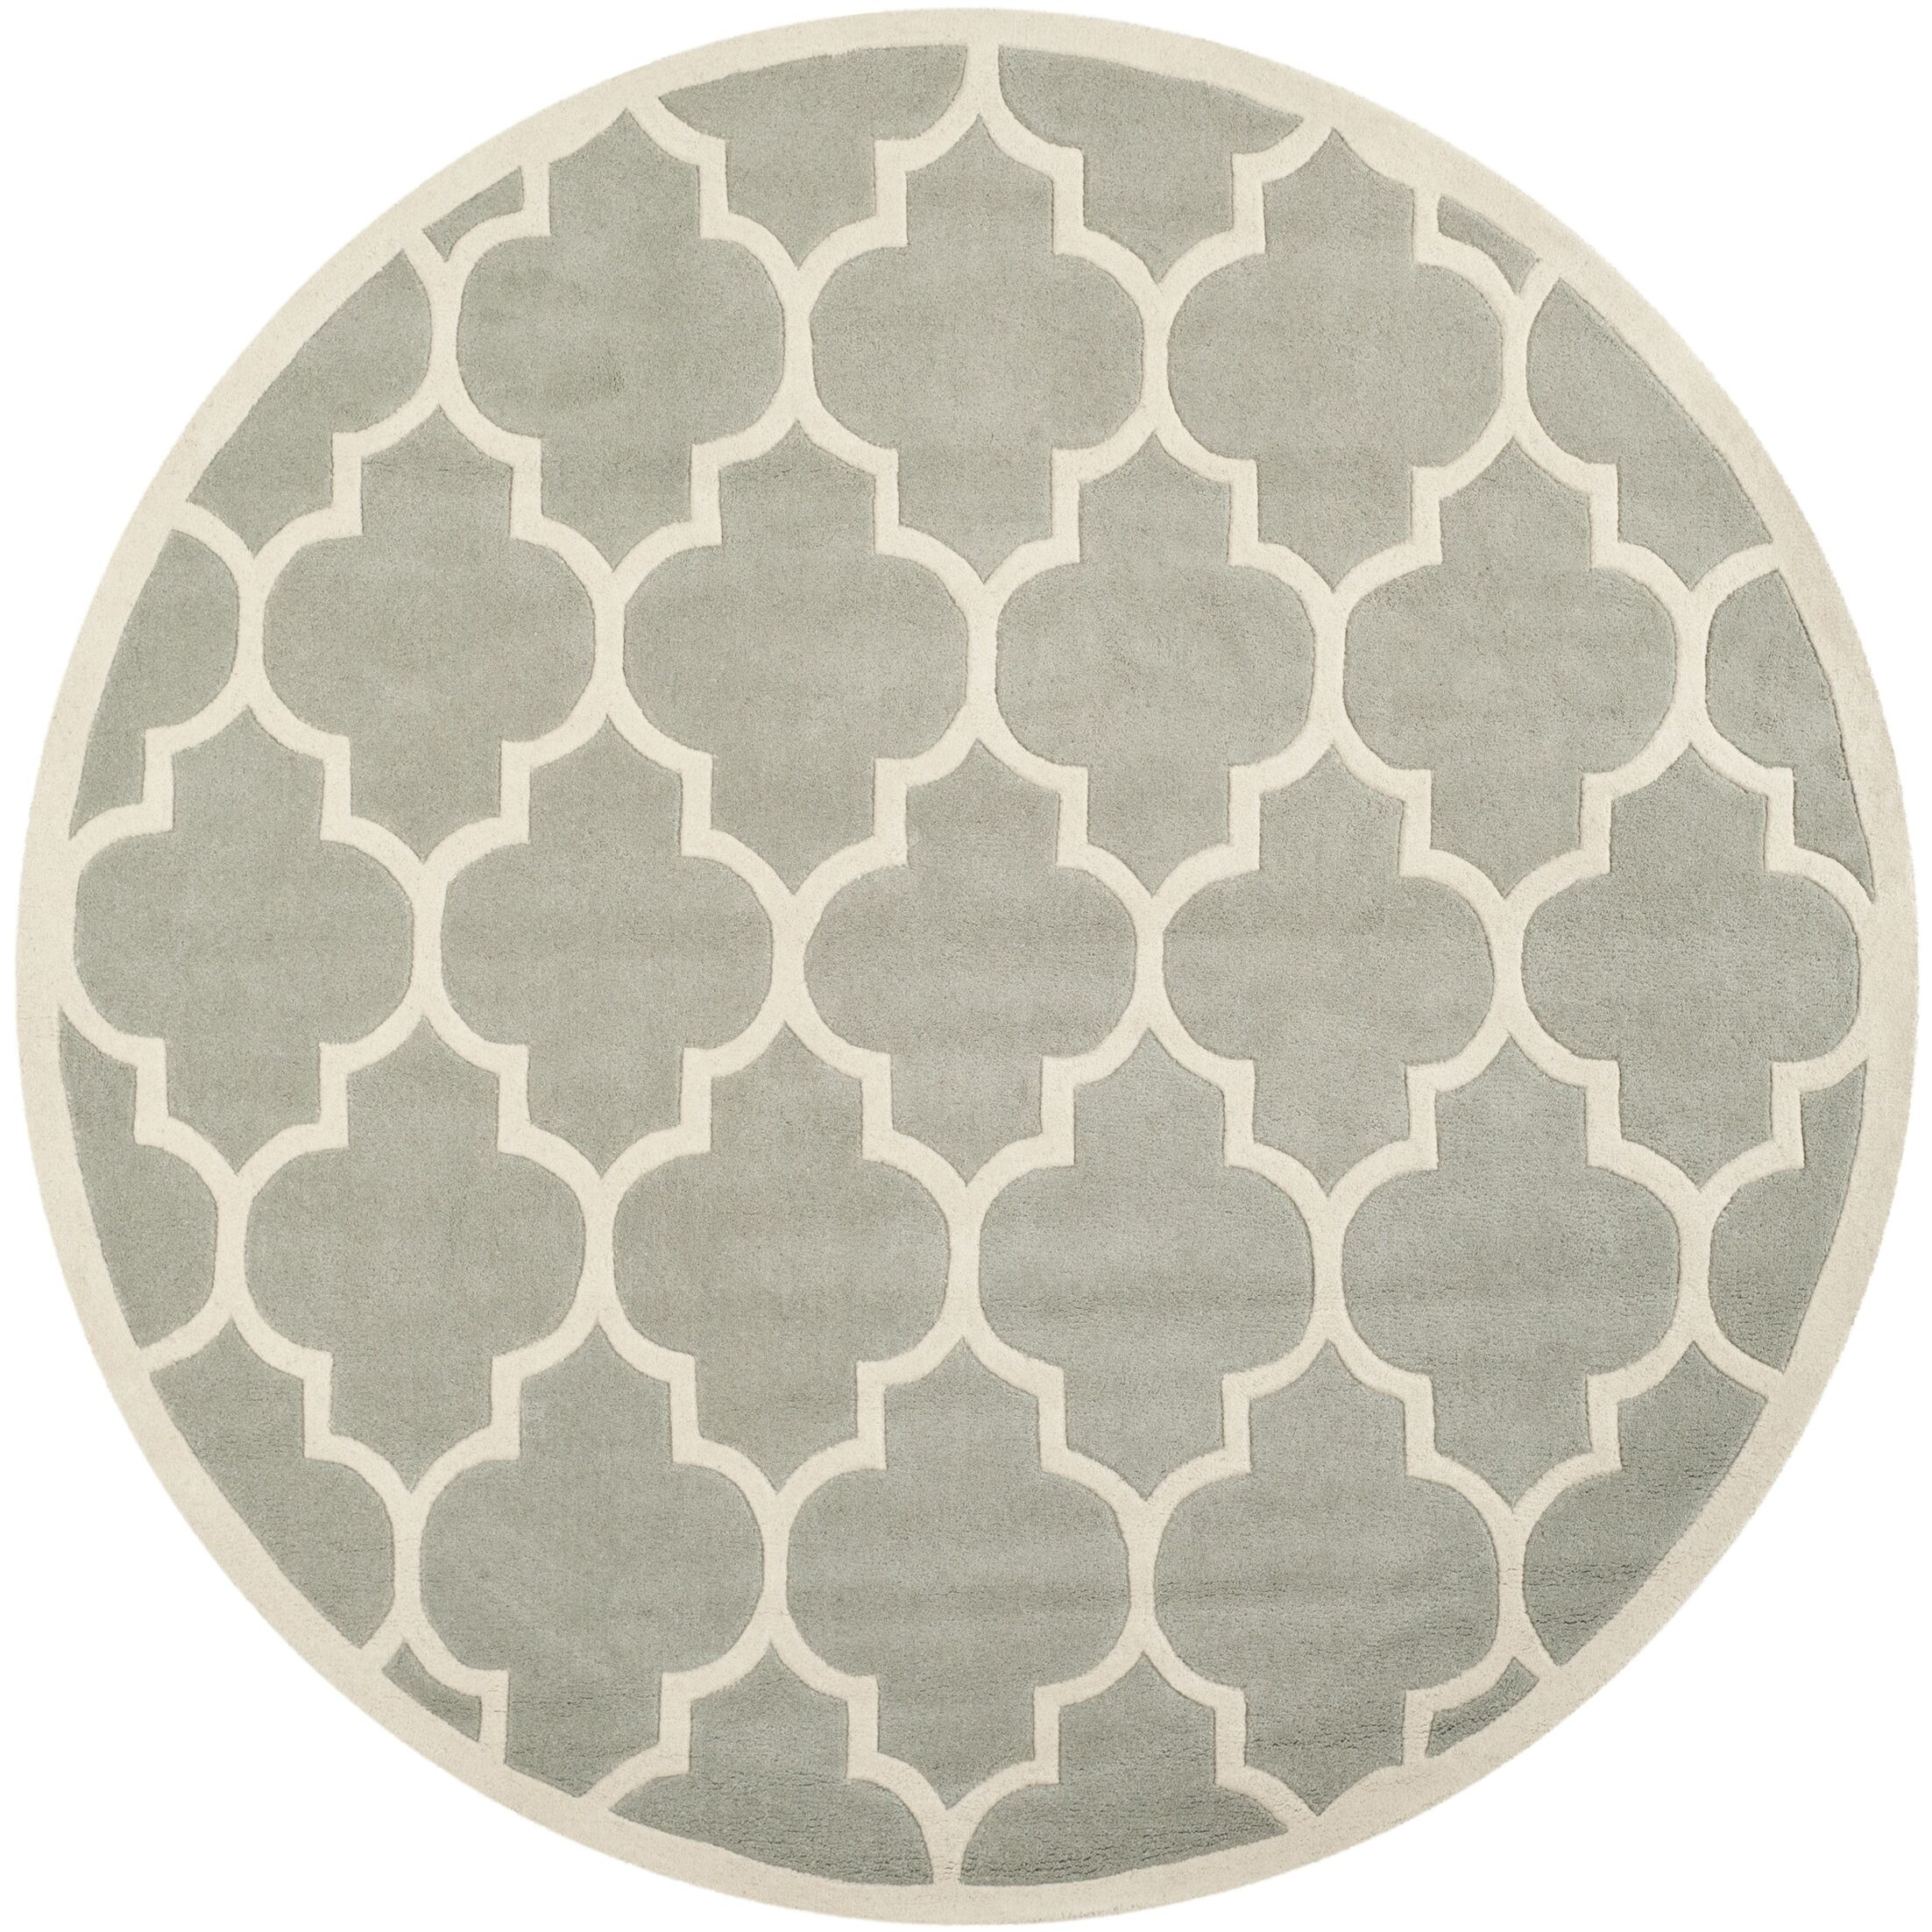 Wilkin Hand-Tufted Gray/Ivory Area Rug Rug Size: Round 4'